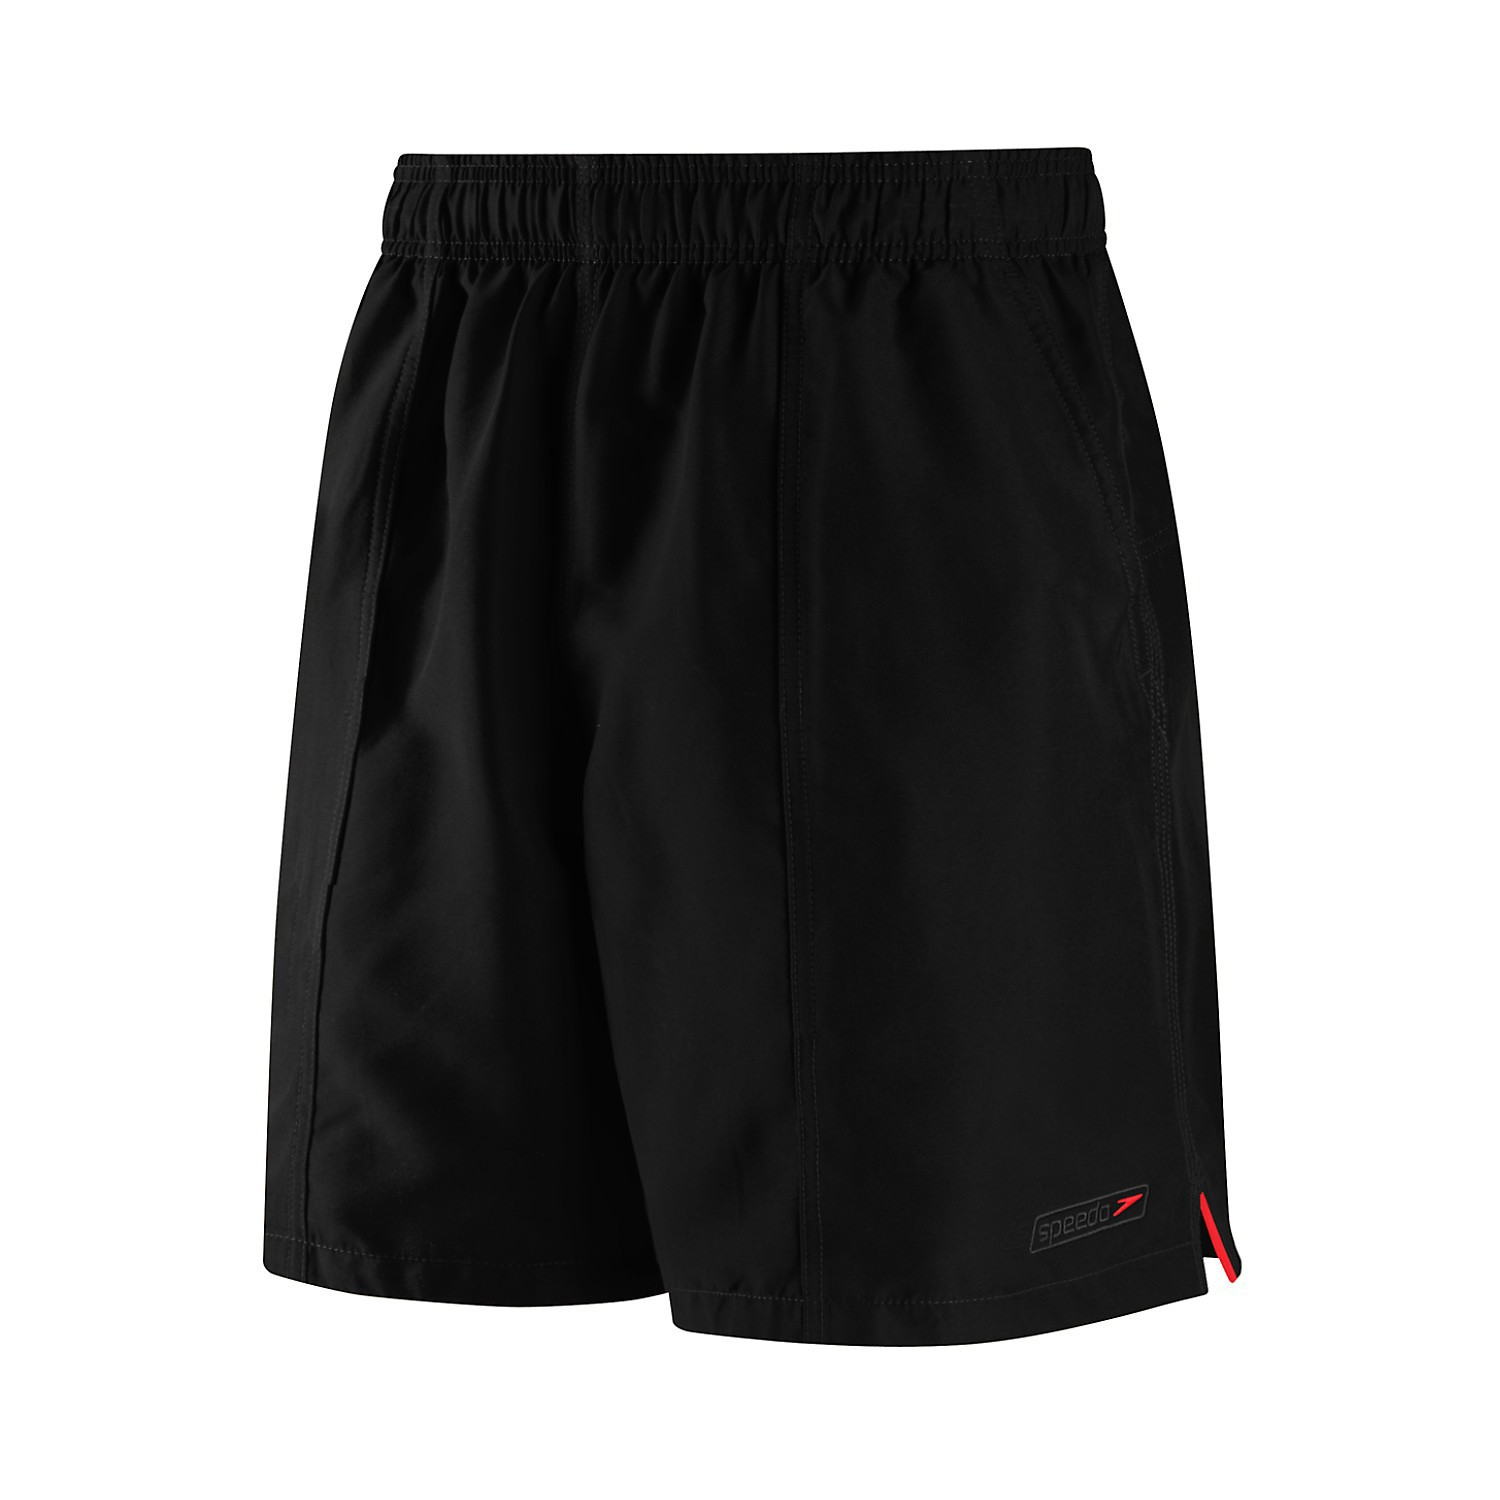 Speedo Rally Volley Shorts Black - Front